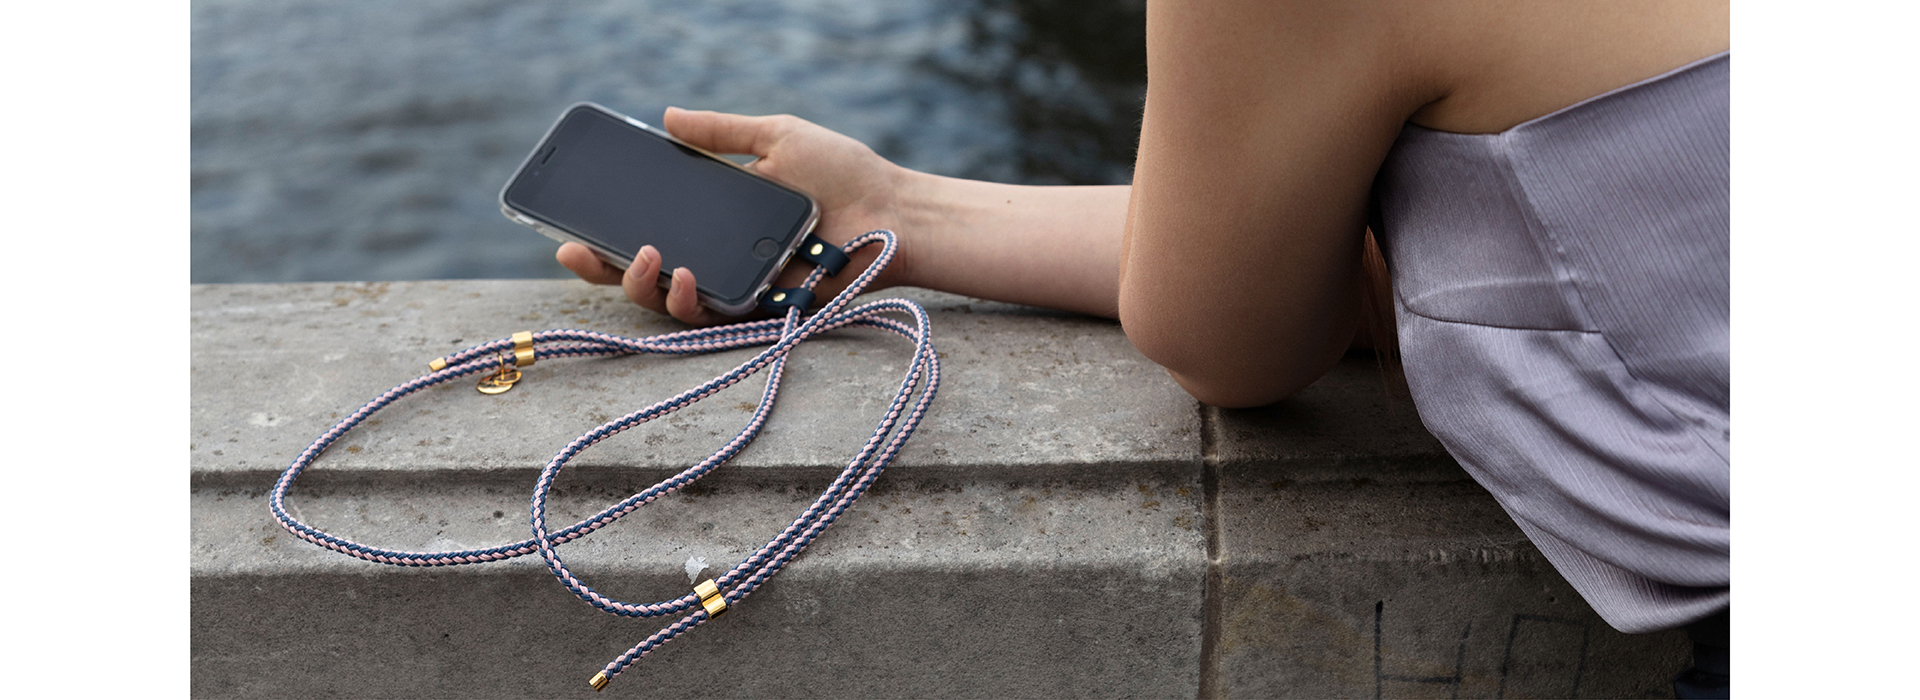 iPhone necklace, handykette , iPhone crossbody case